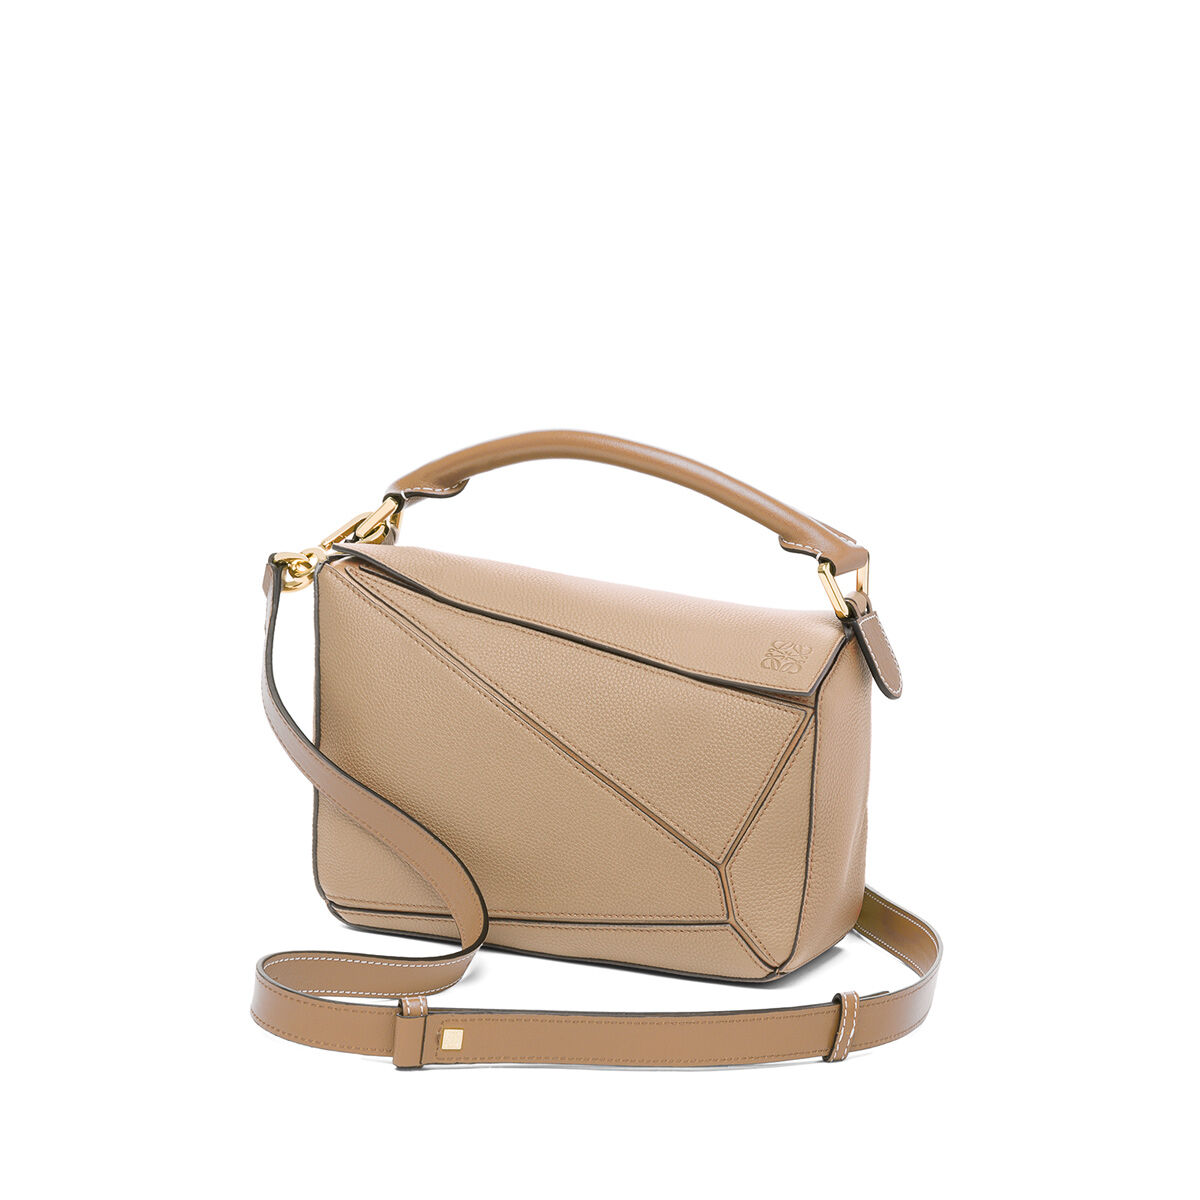 LOEWE Puzzle Small Bag Sand/Mink Color all